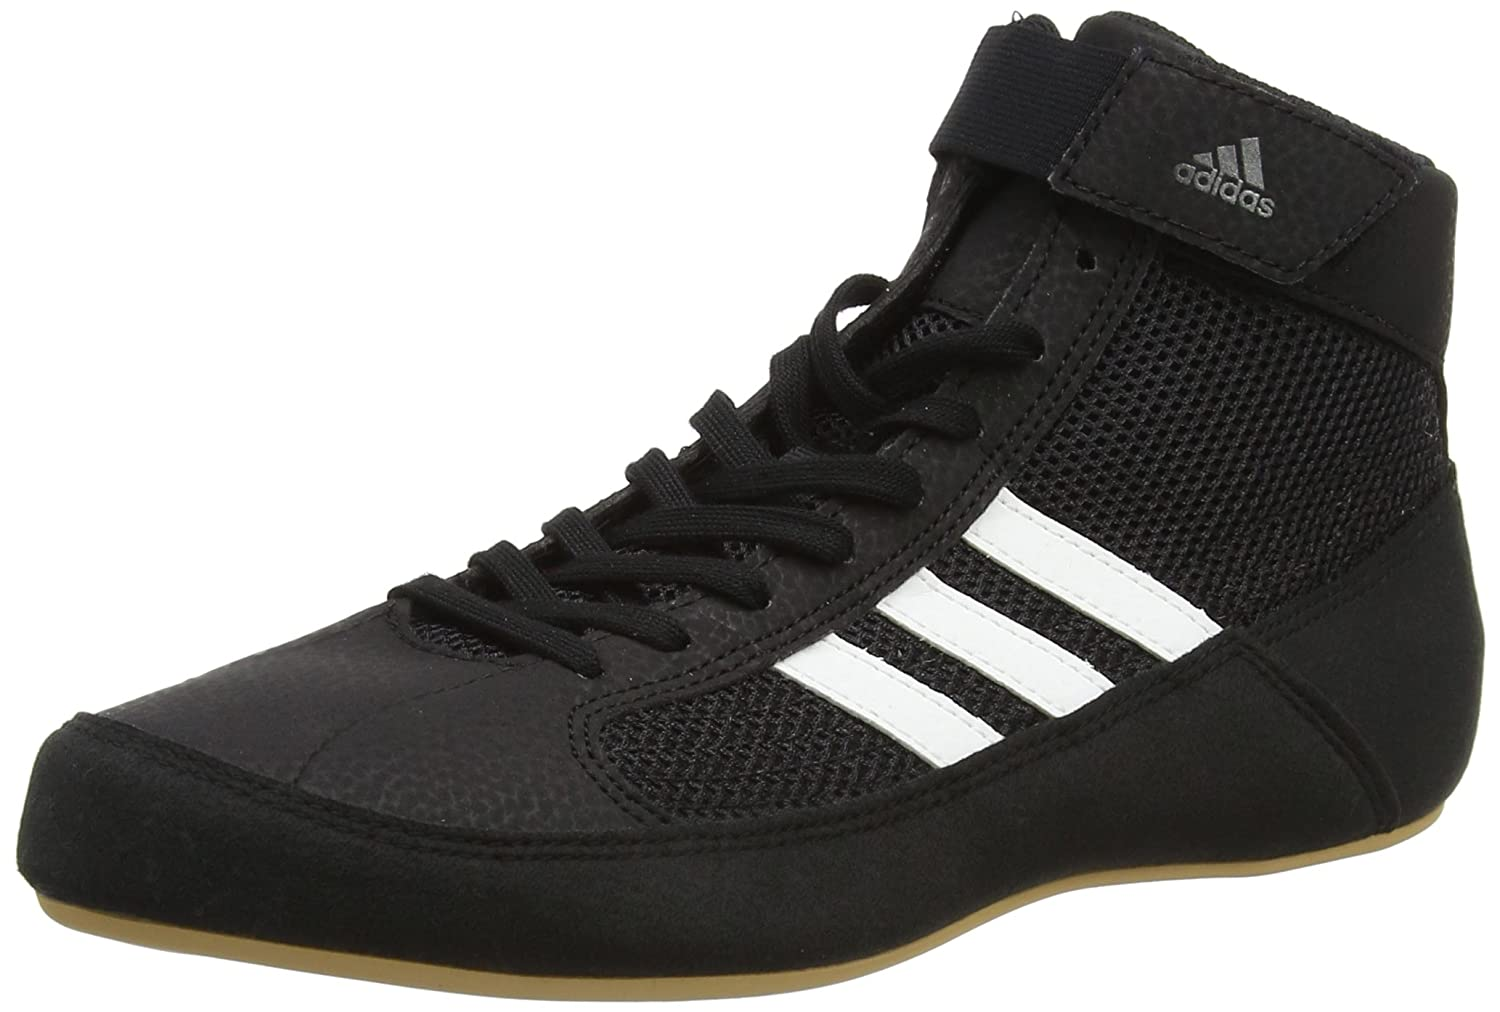 adidas deadlift shoes